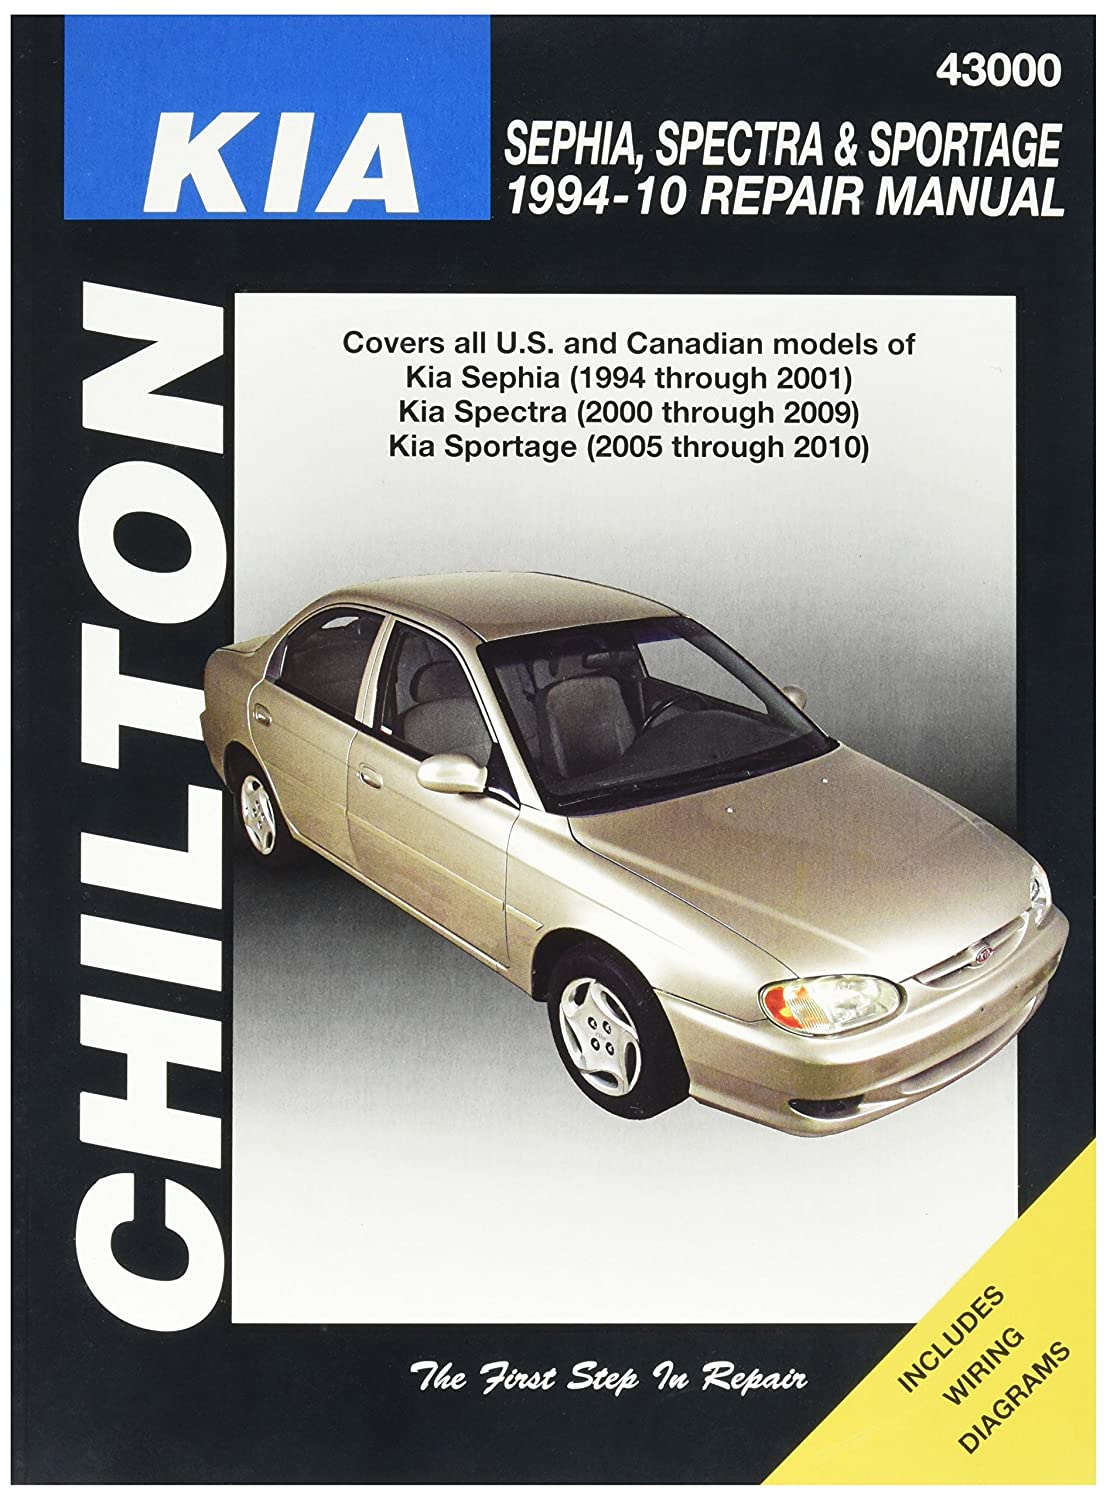 91mhk VLAWL._SL1500_ amazon com chilton kia repair manual automotive kia sportage wiring diagram service manual at soozxer.org